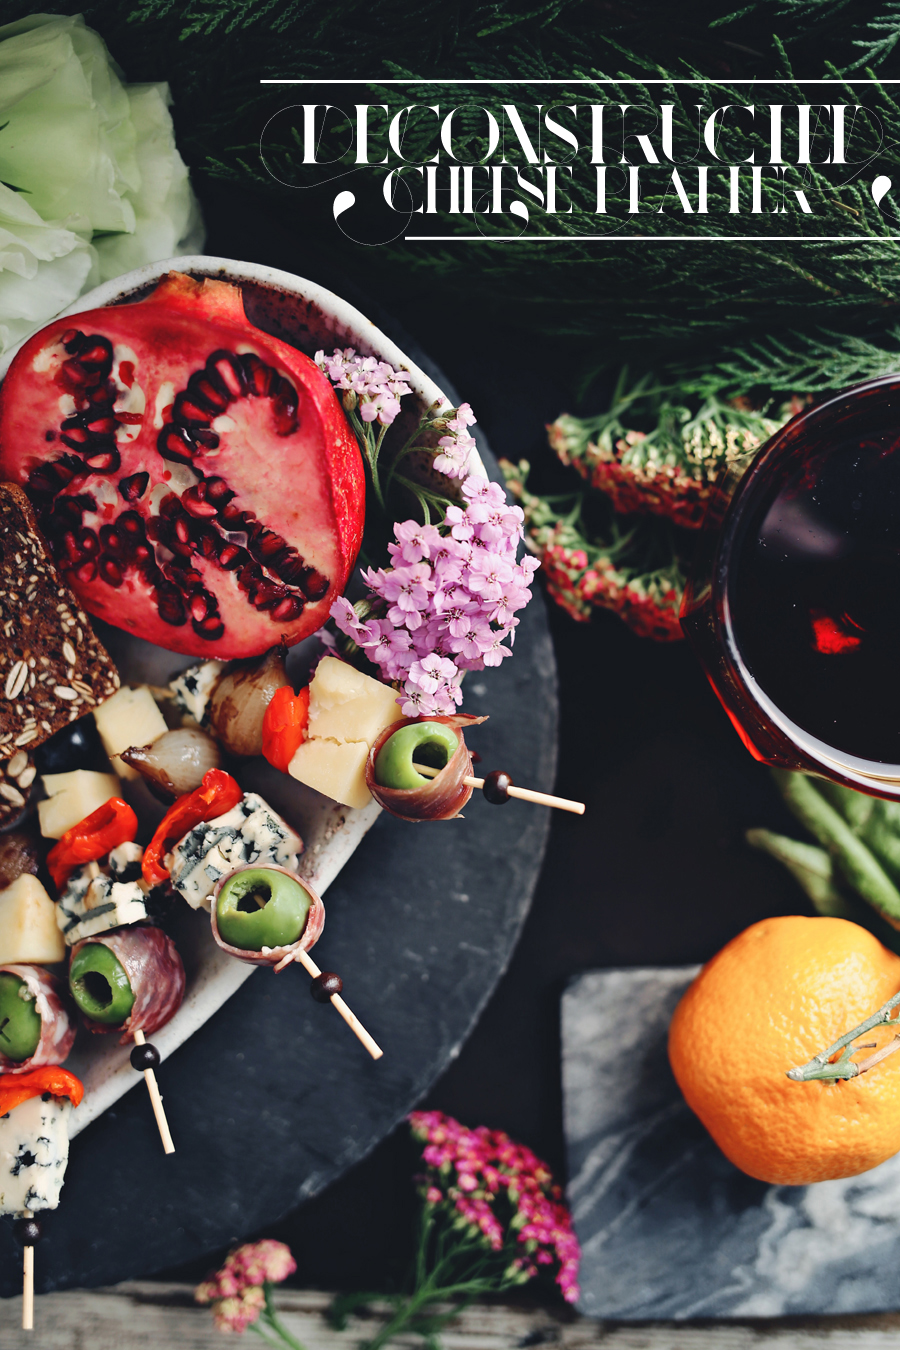 deconstructed-cheese-board-dine-x-design-entertaining-hacks